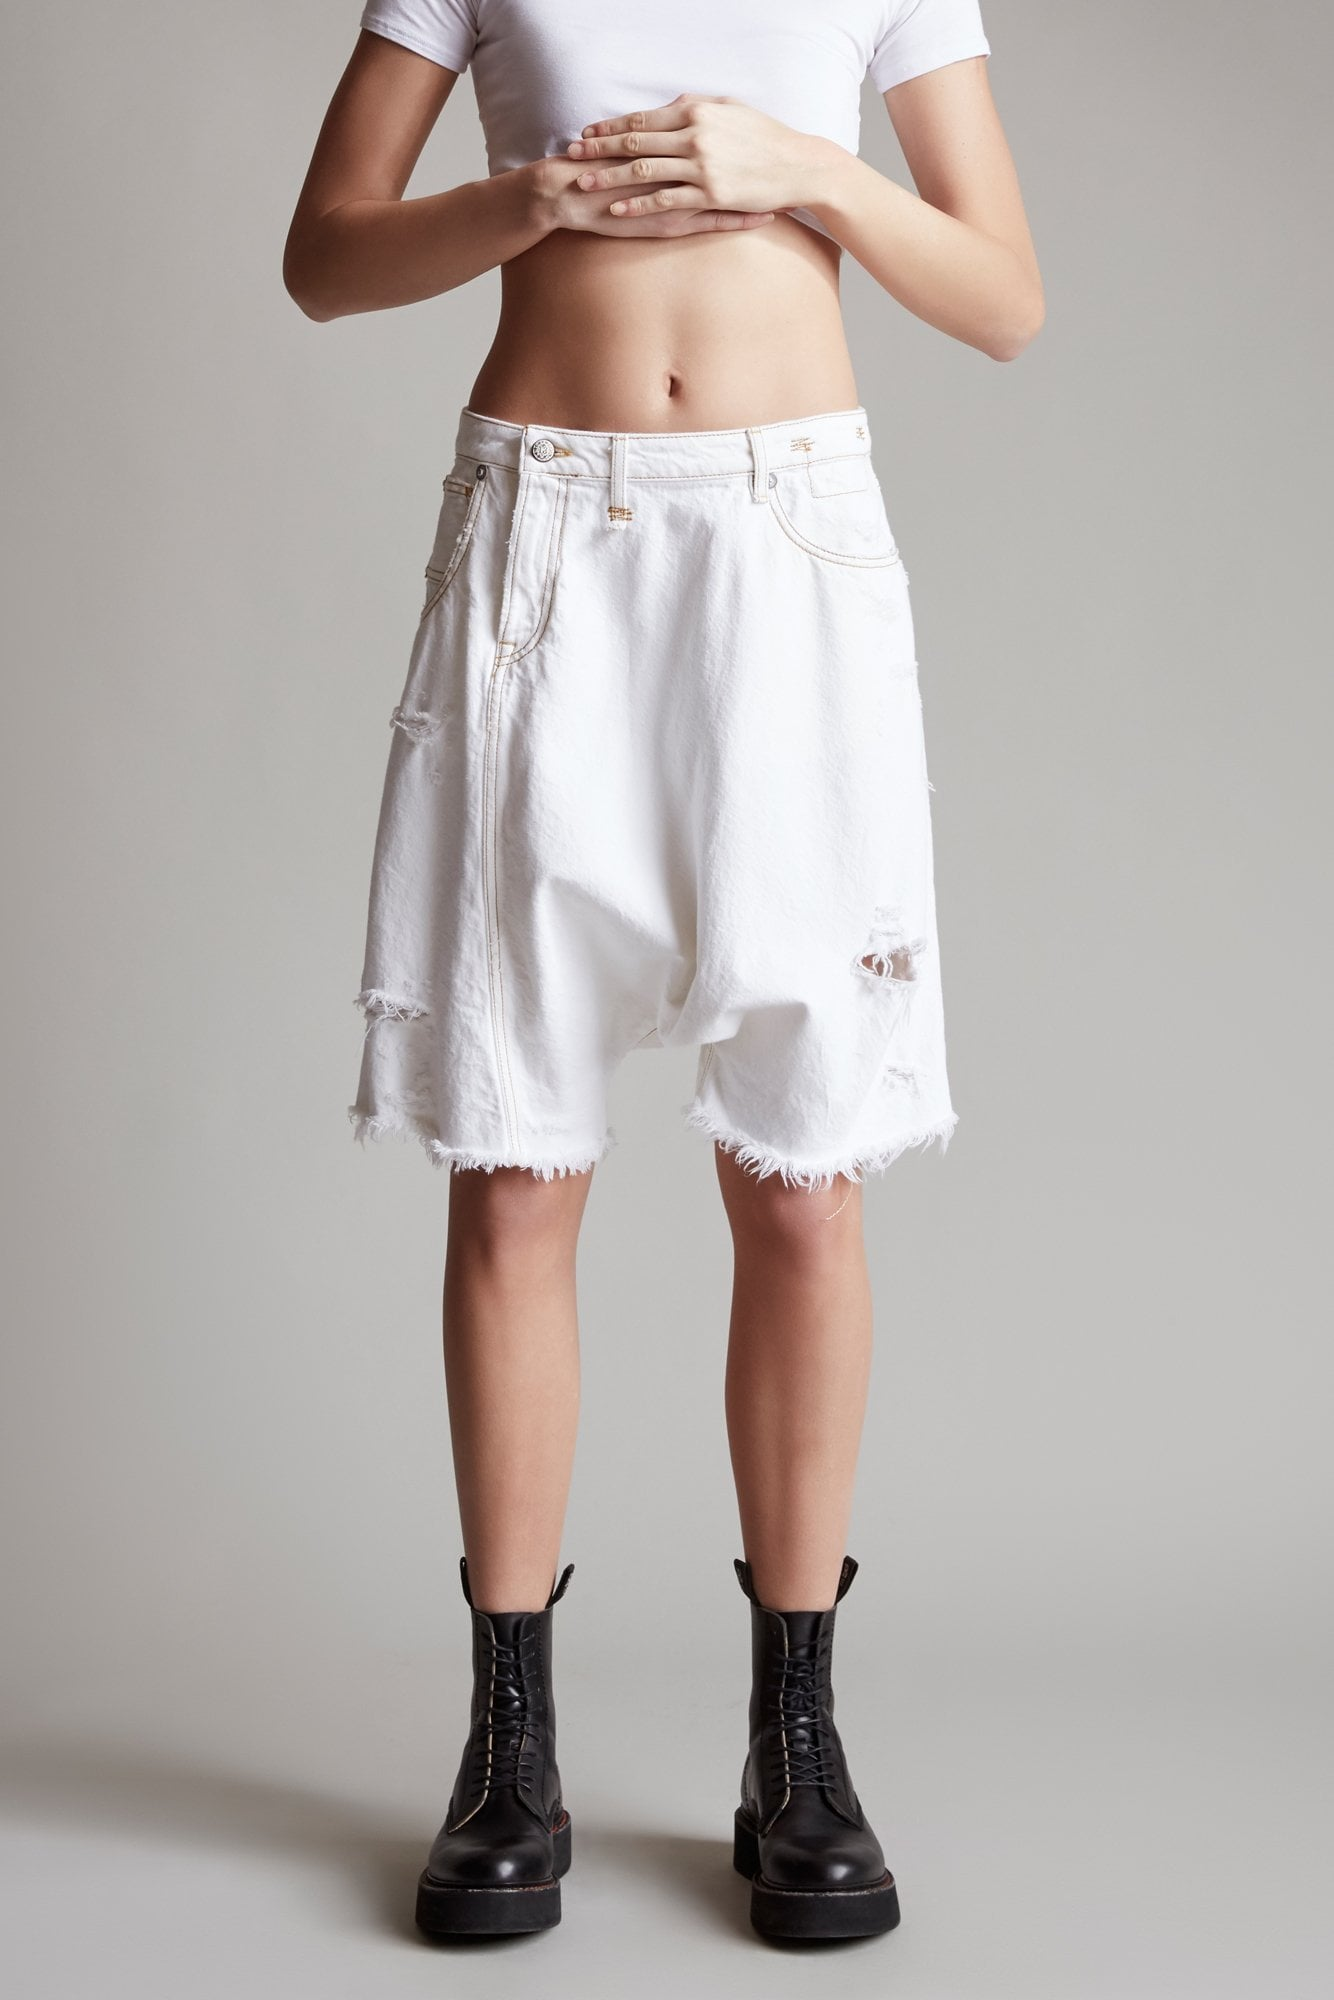 Twister Short– Caspar White